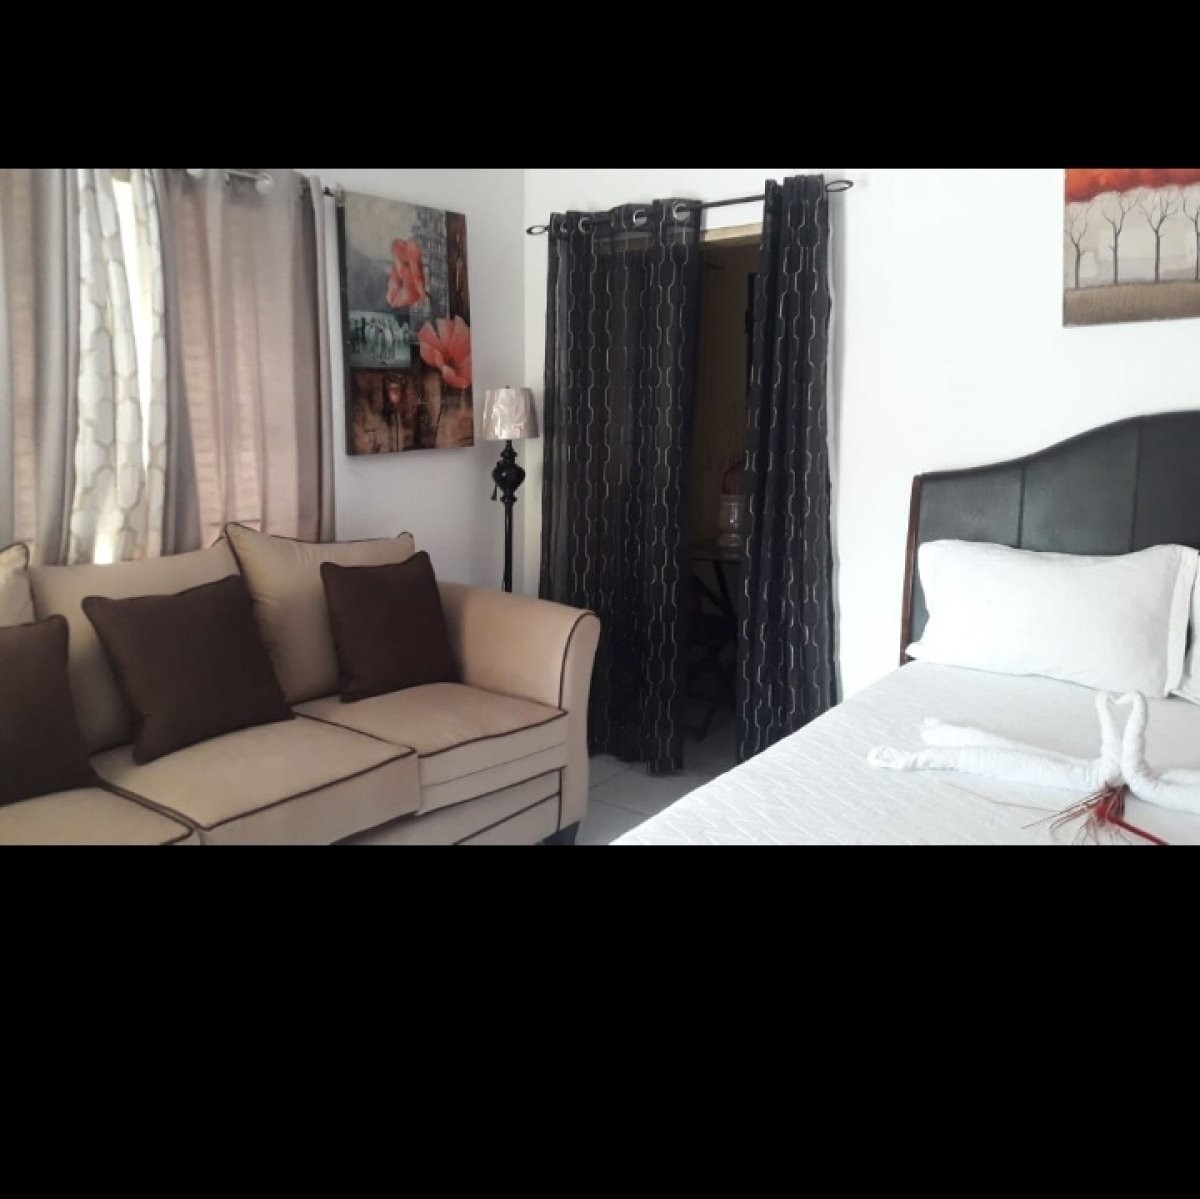 Furnished Studio Apartments: Fully Furnished 1 Bedroom Apartment Studio For Rent In